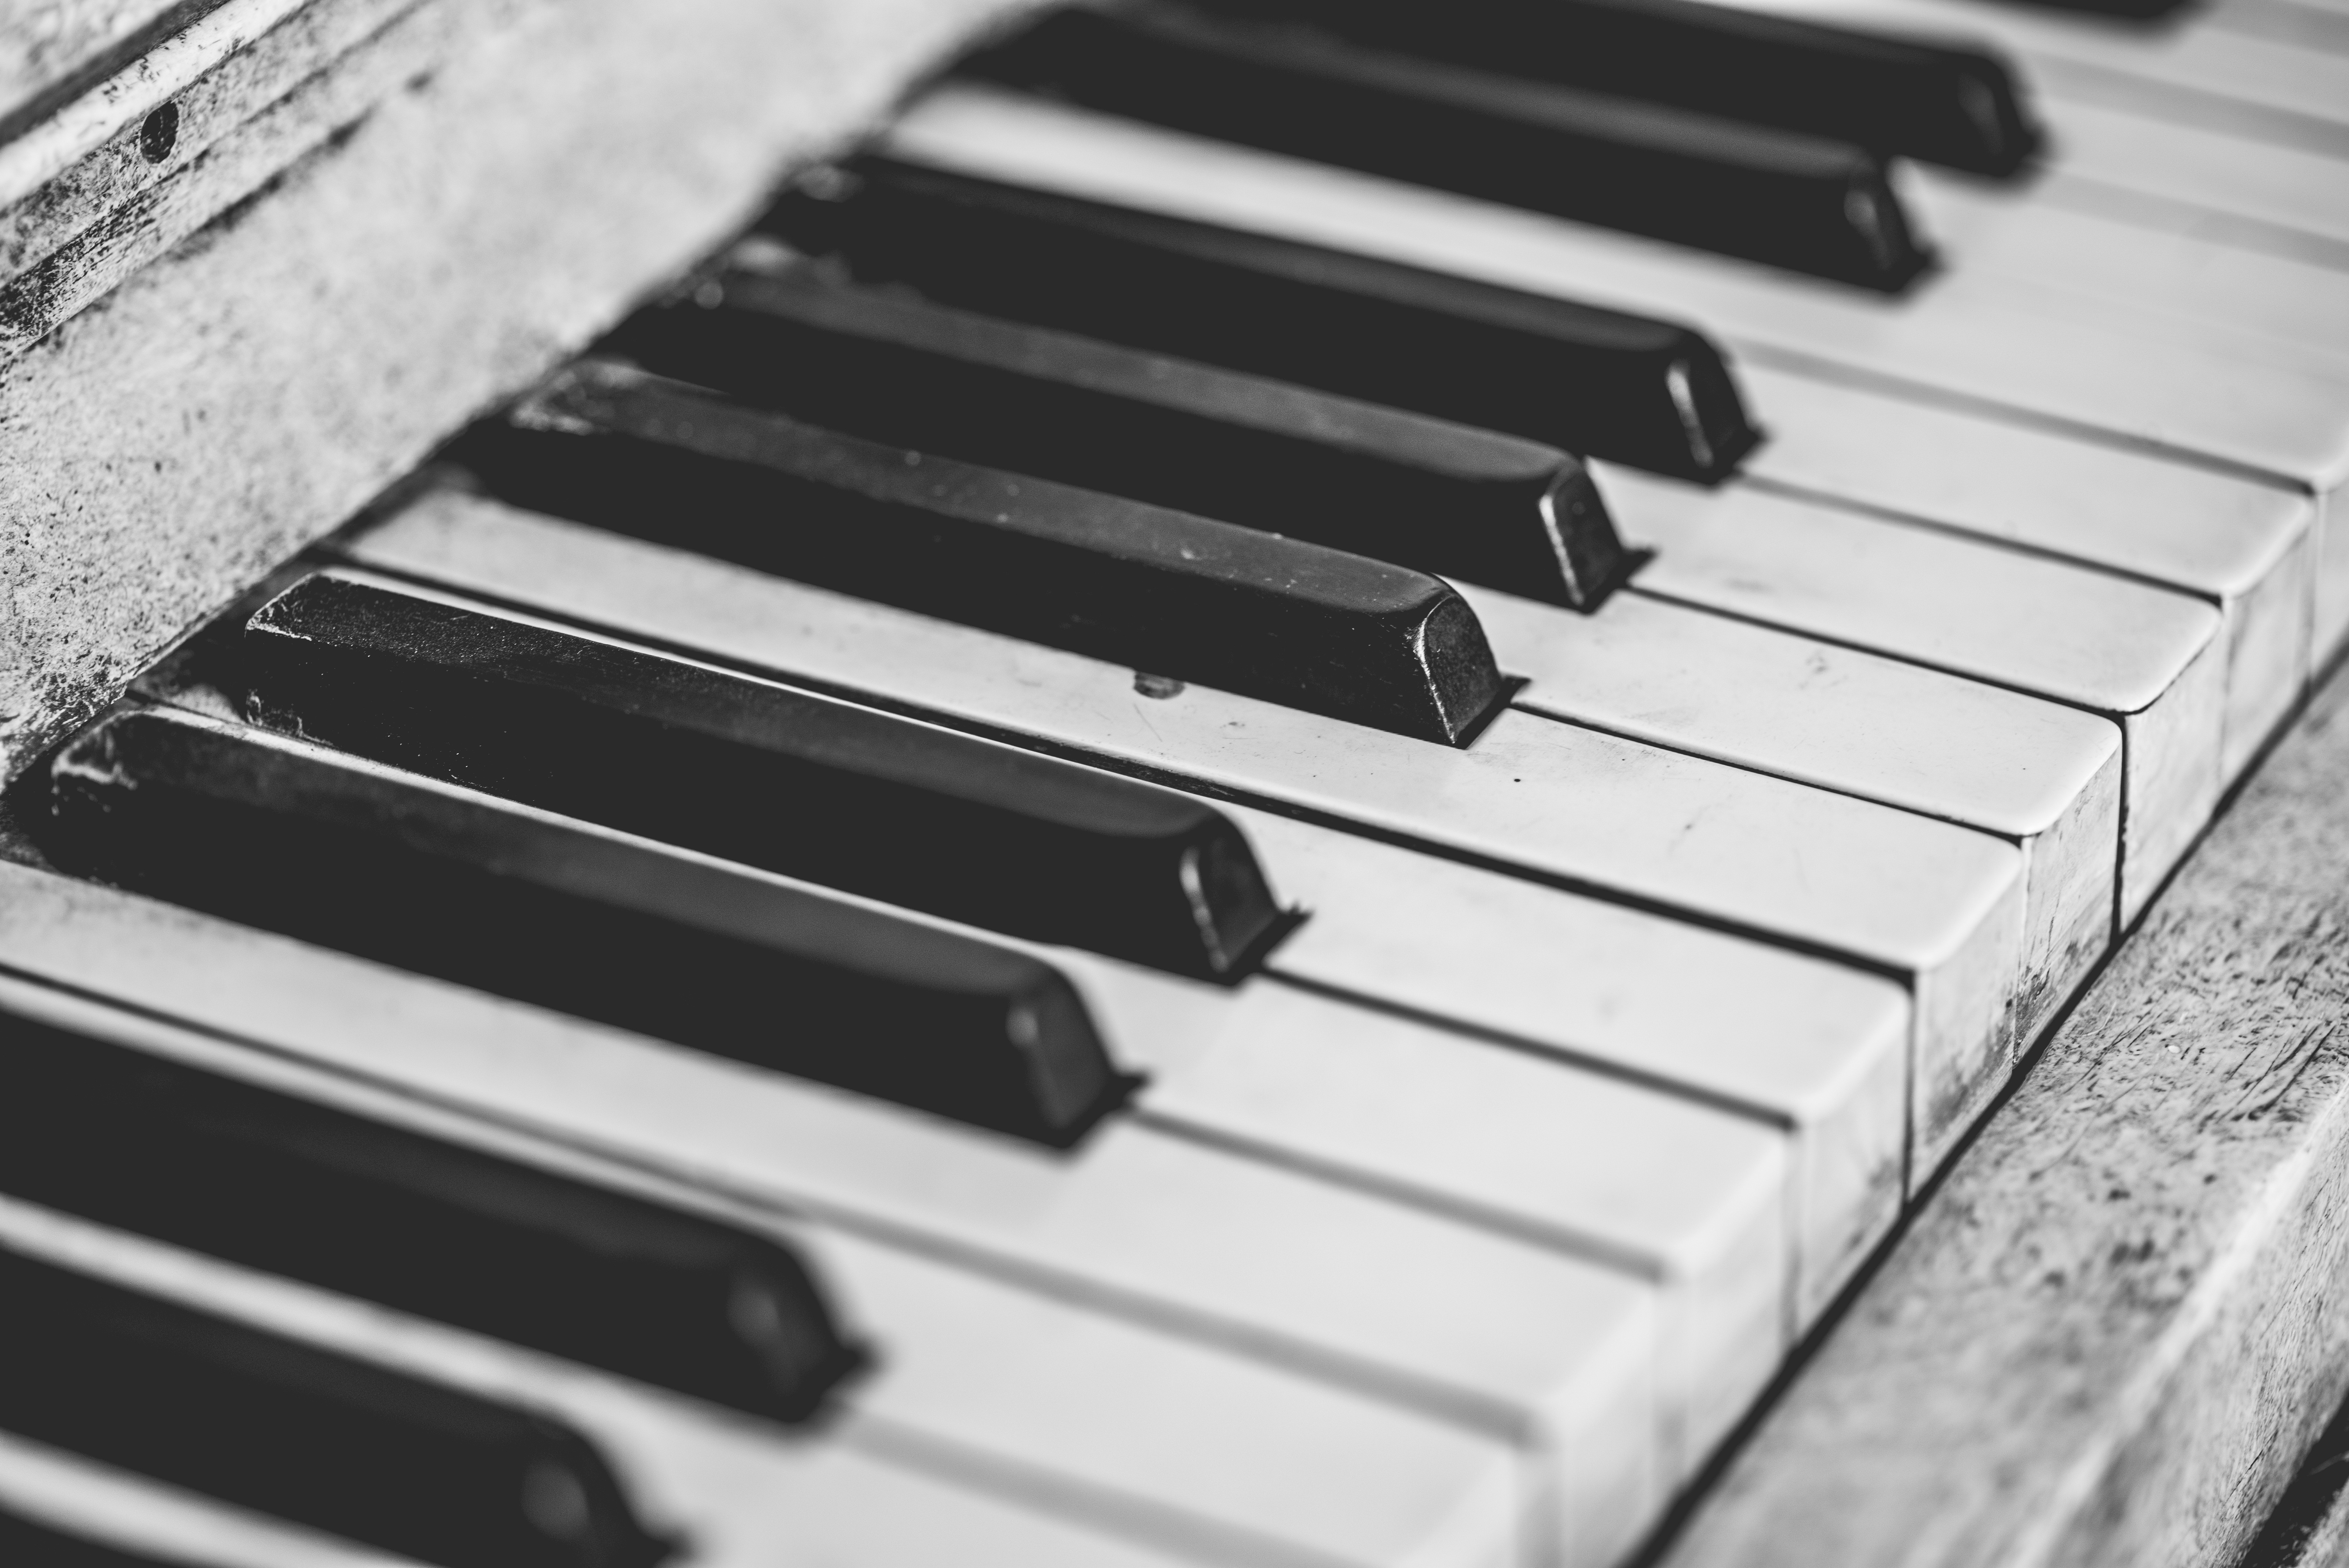 Black Music Wallpaper Hd Selective Focus Photography Of Upright Piano 183 Free Stock